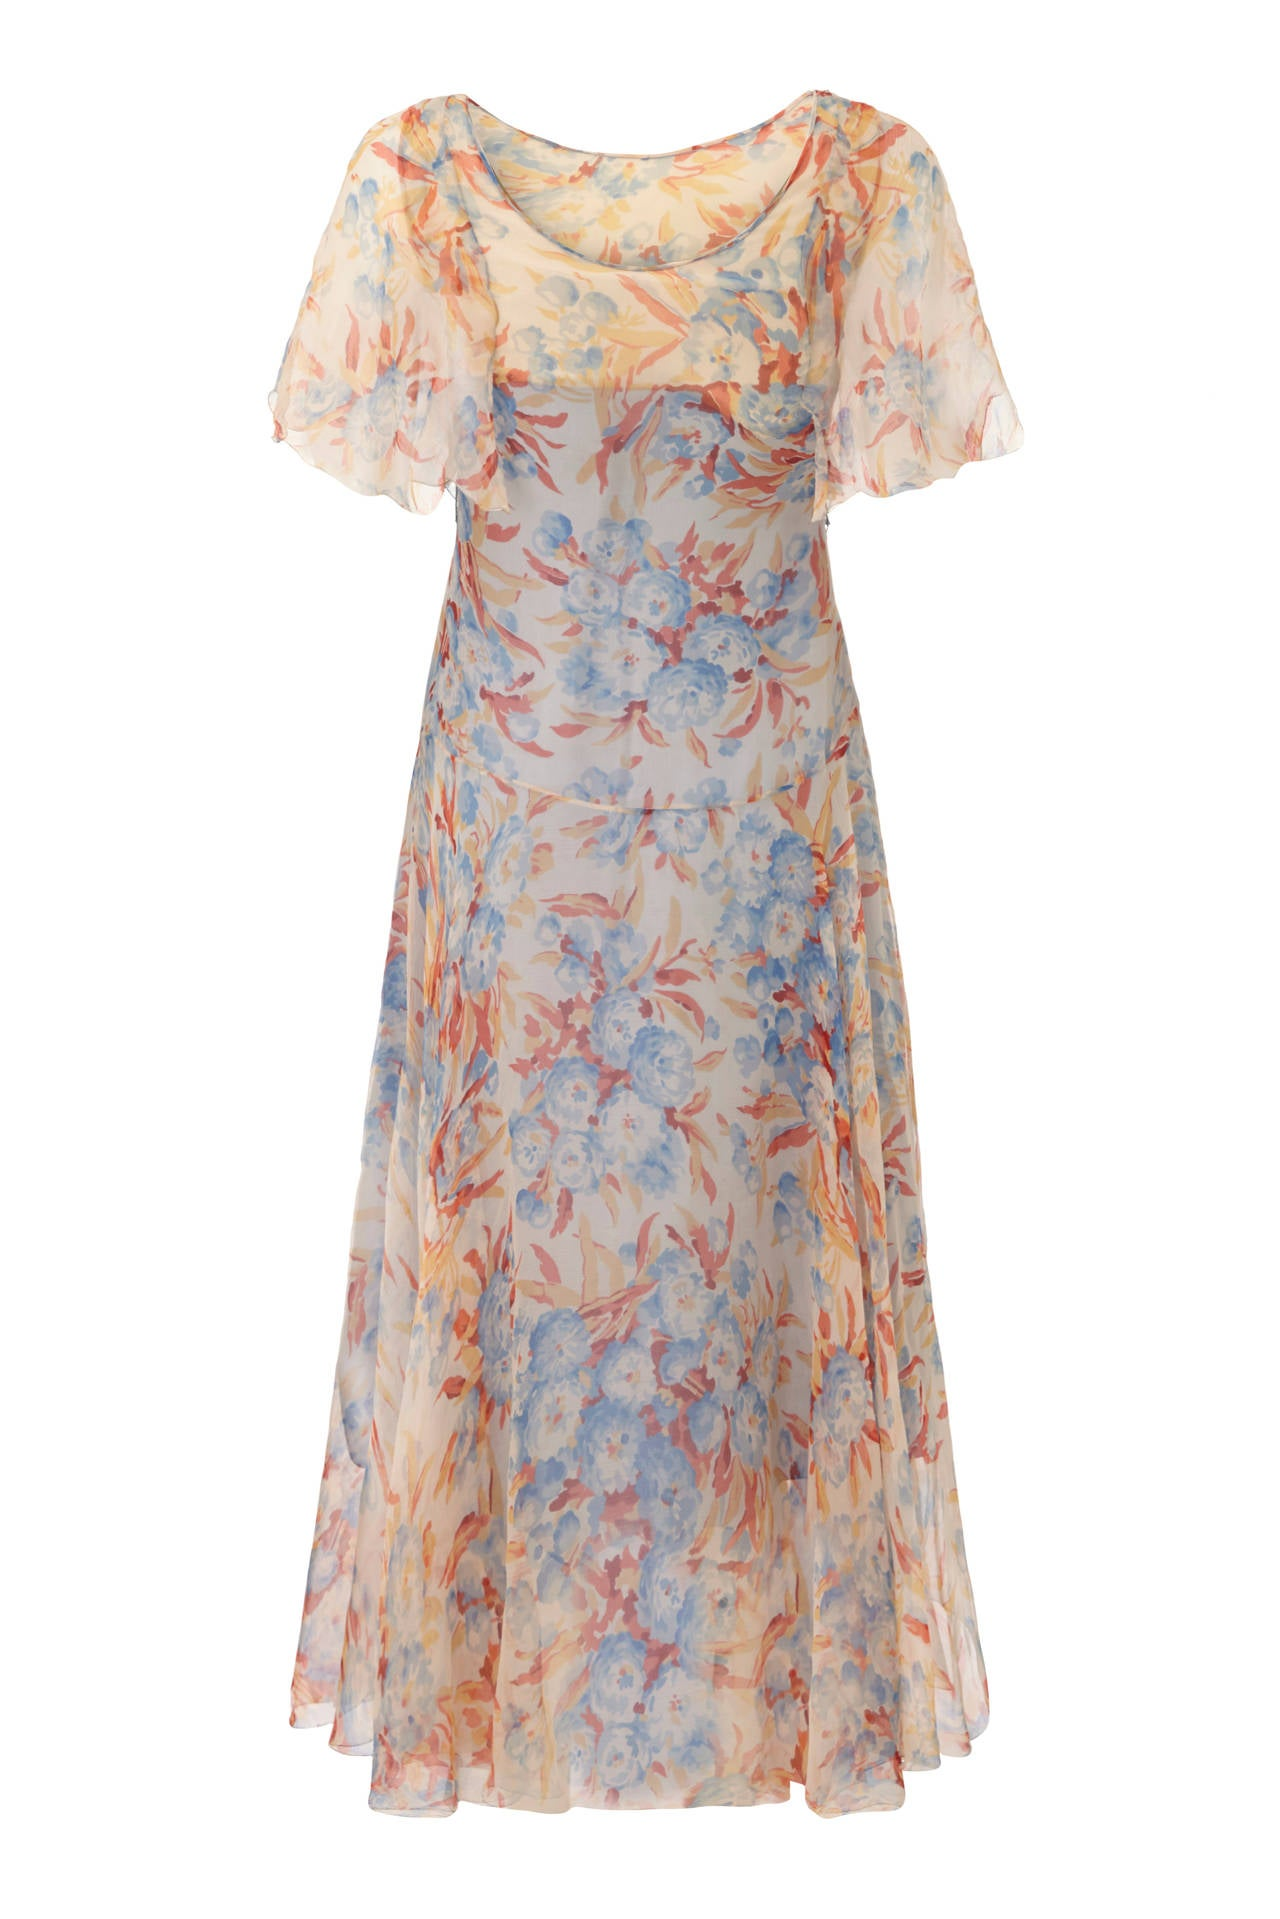 Gorgeous floaty peach silk chiffon original 1920s dress with pretty blue and red floral print. This piece features cape style sleeves with scalloped edge, dropped waist and poppers to fasten at the side.  It is in excellent condition and is lined in